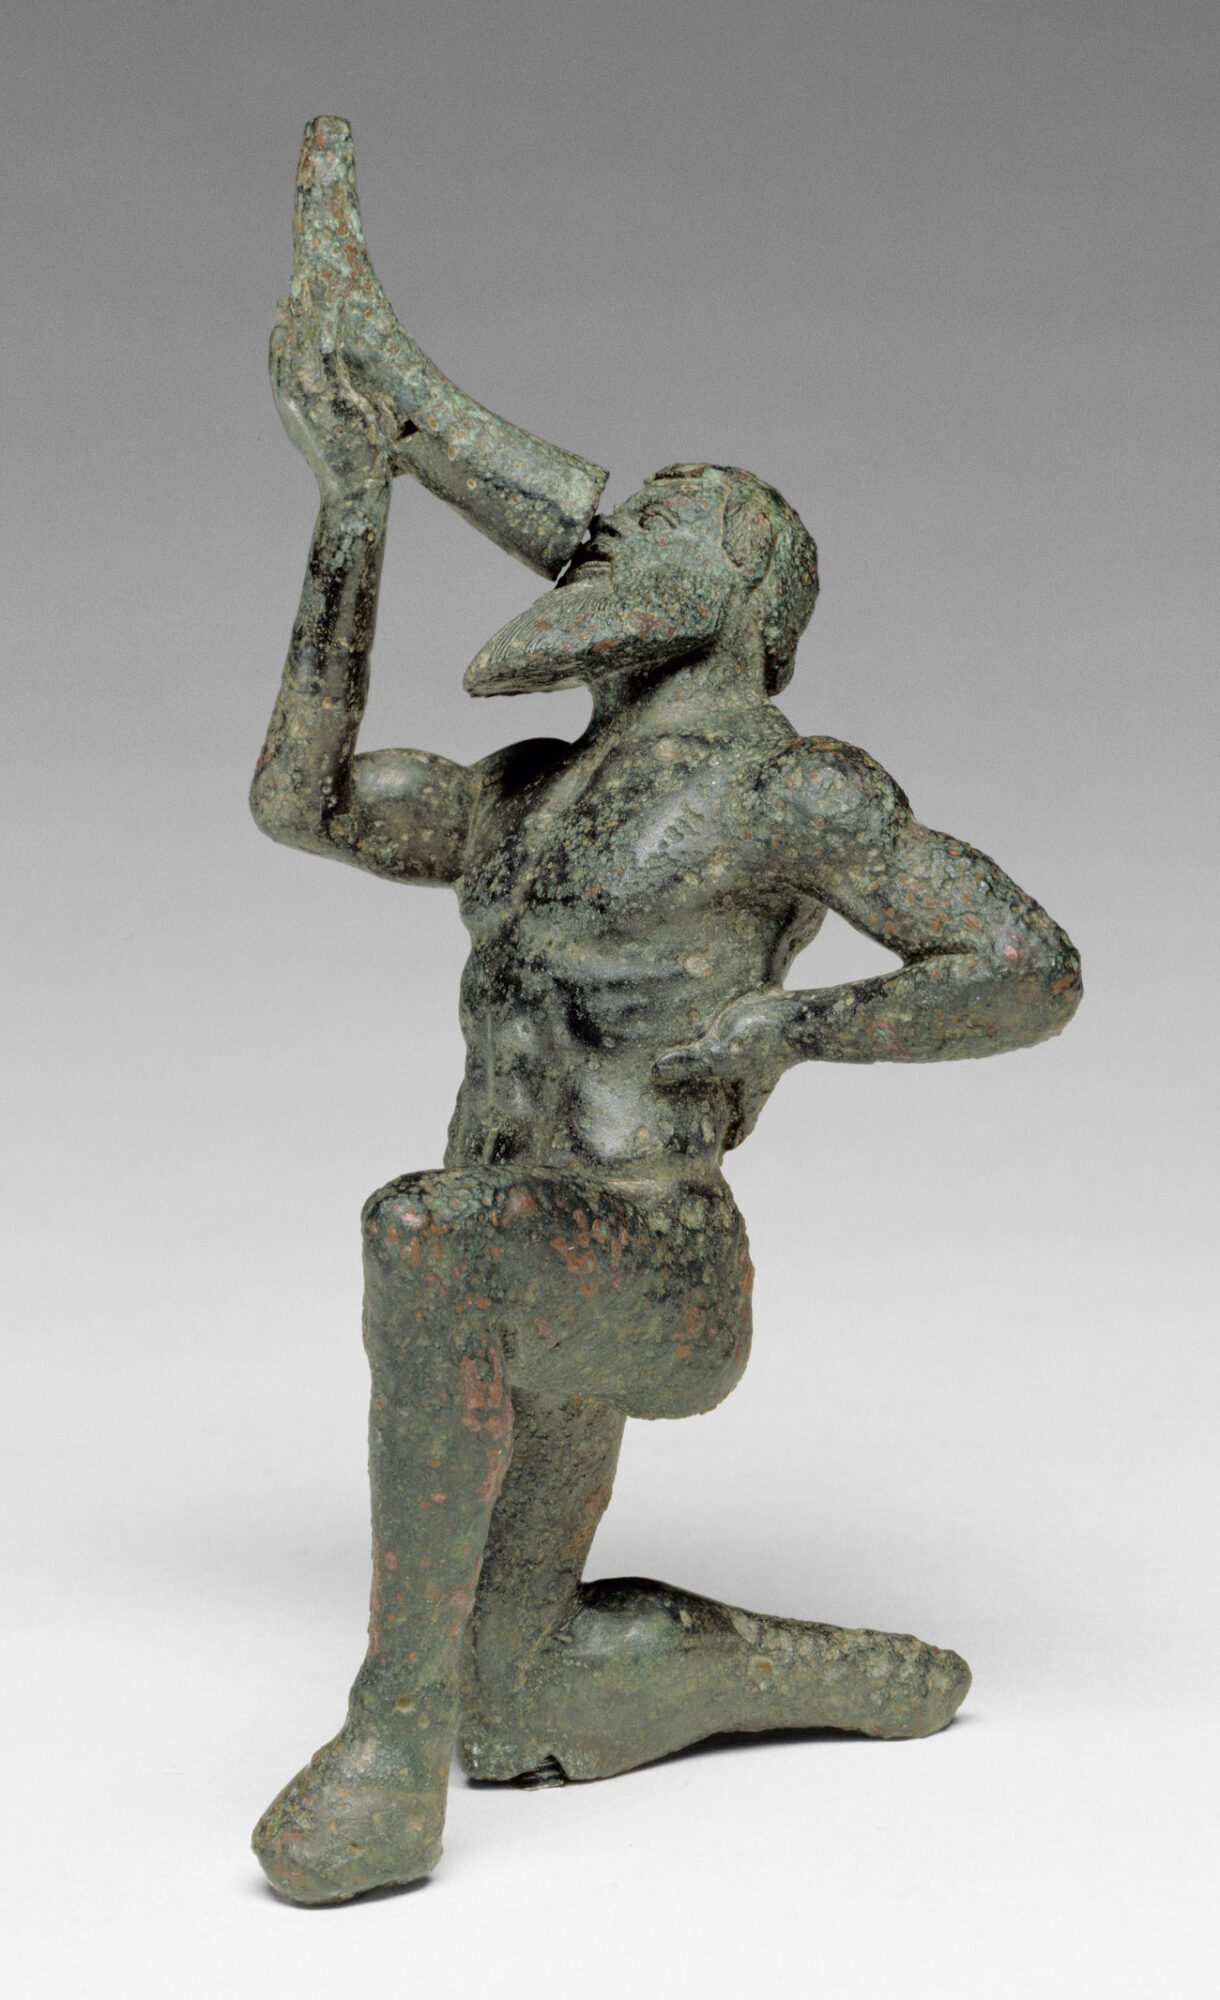 Statue of satyrl kneeling and drinking from a horn